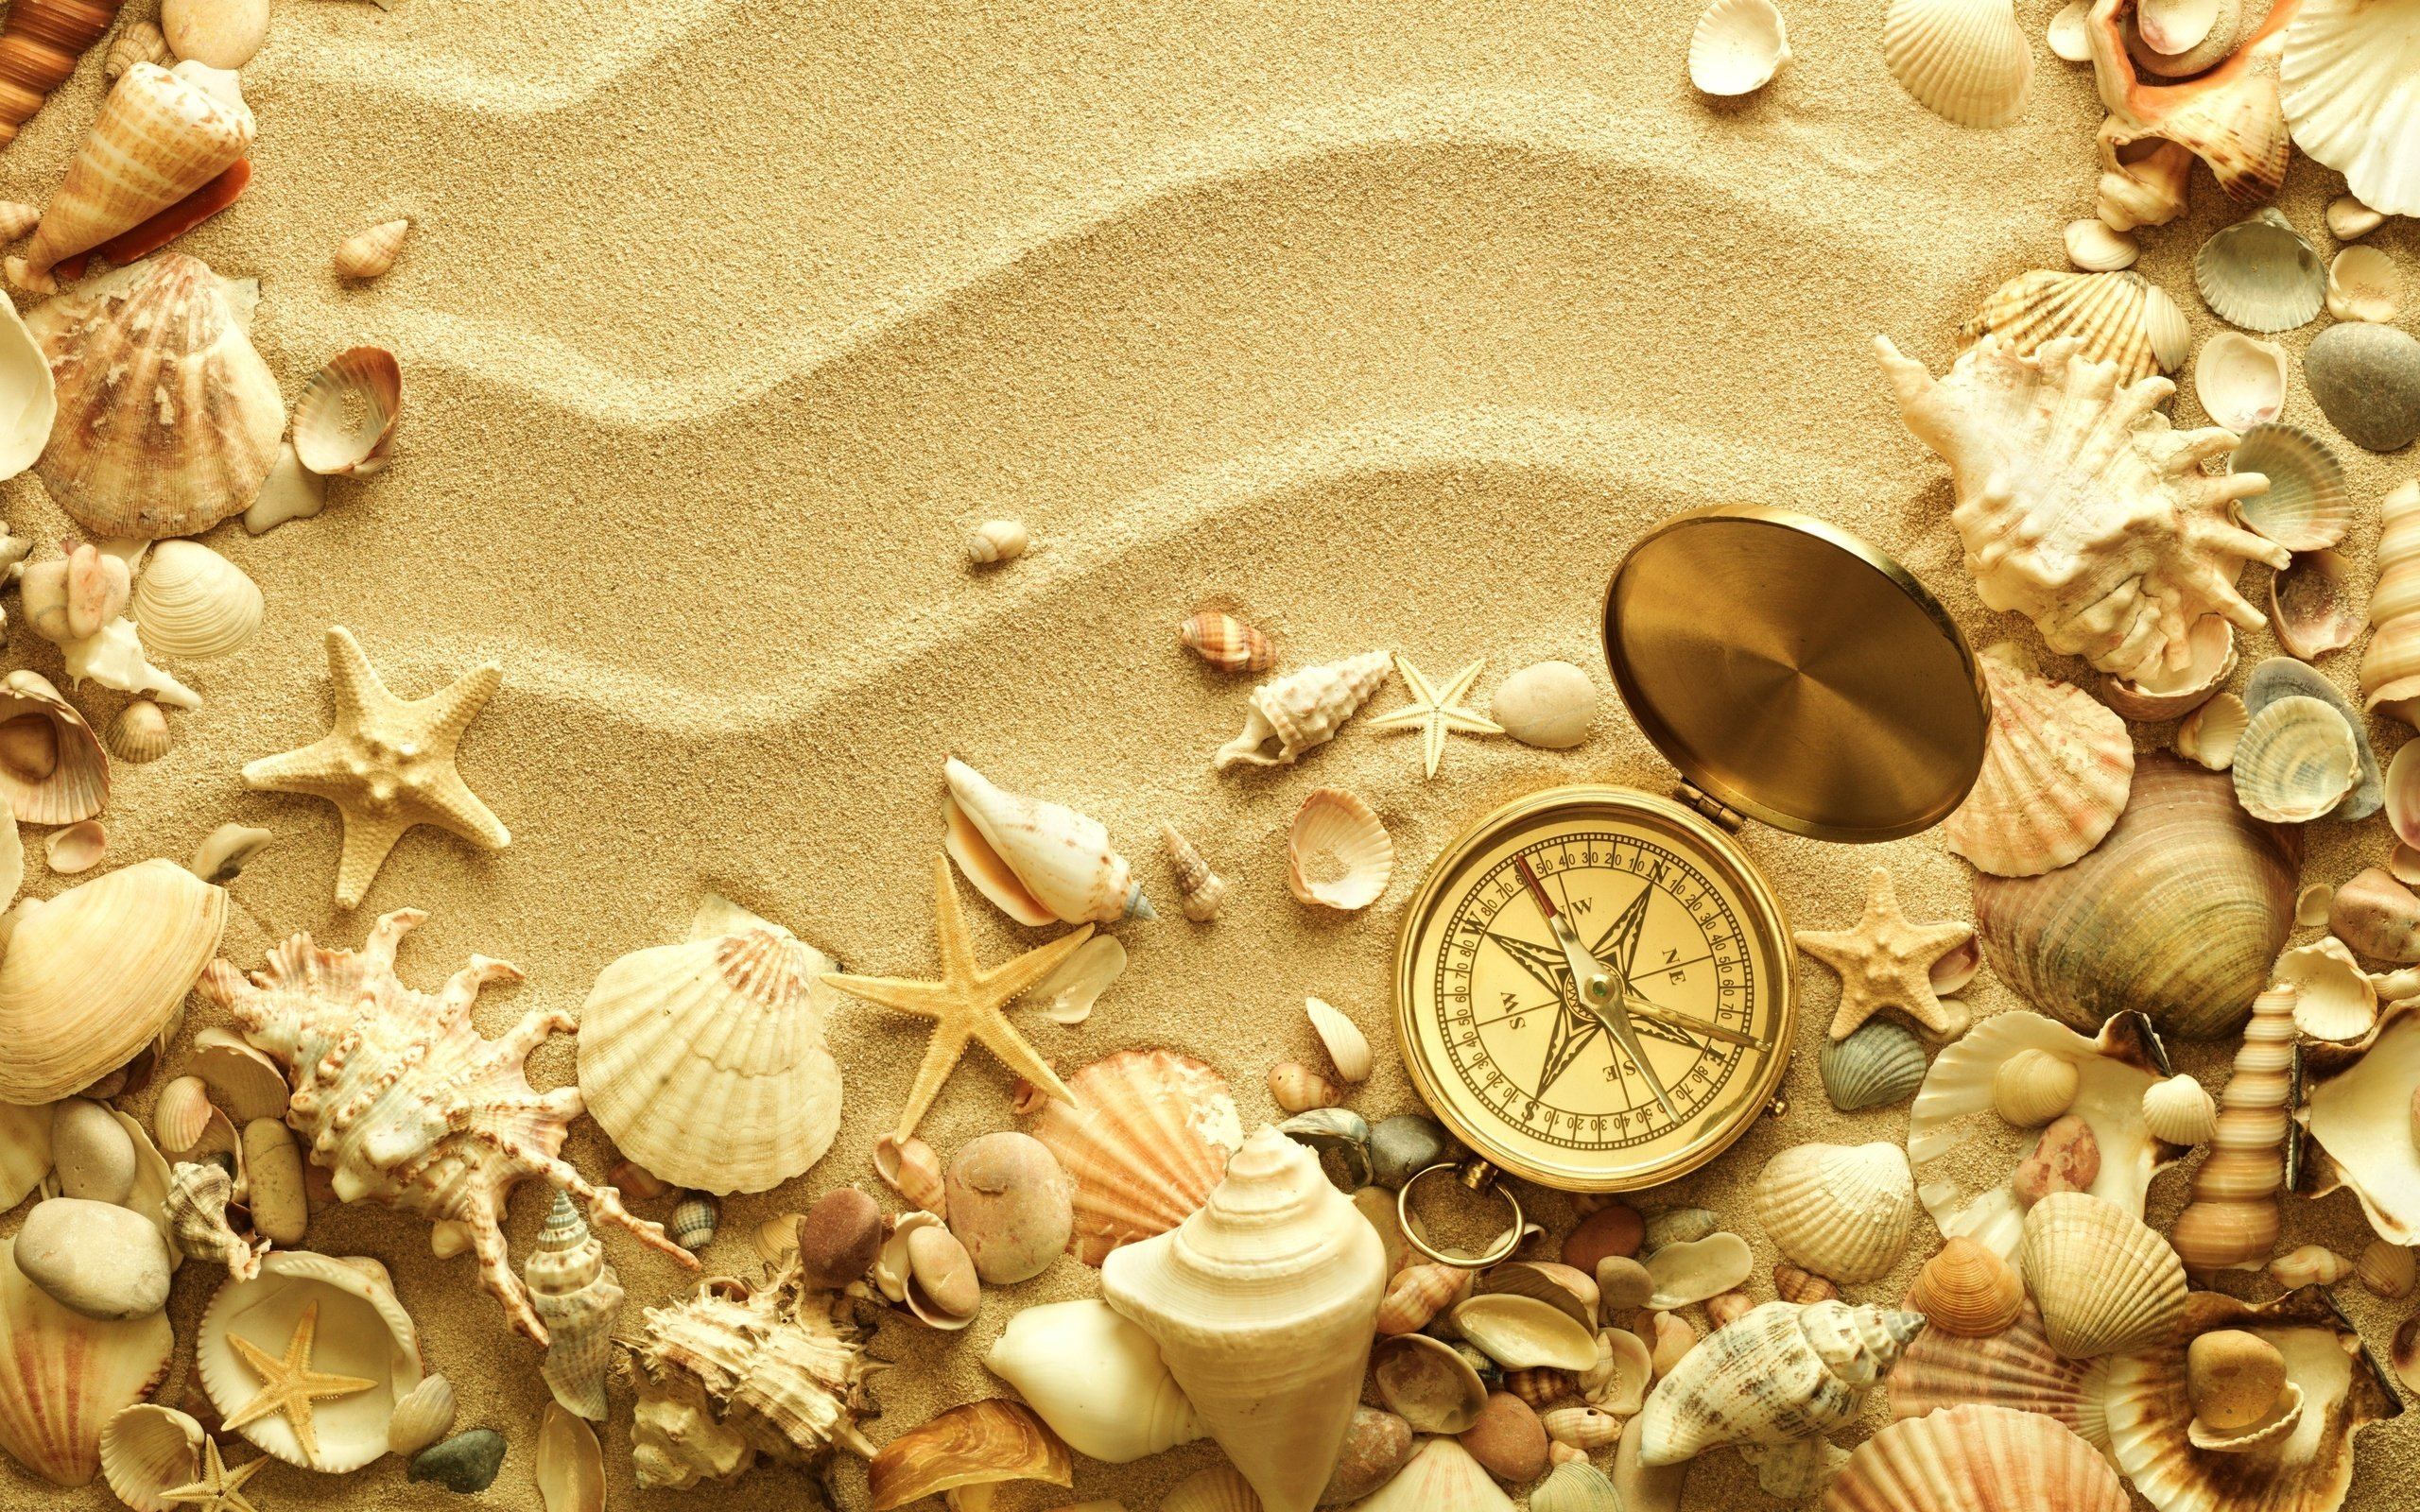 Ocean Sand Shells HD Wallpaper Background Images 2560x1600